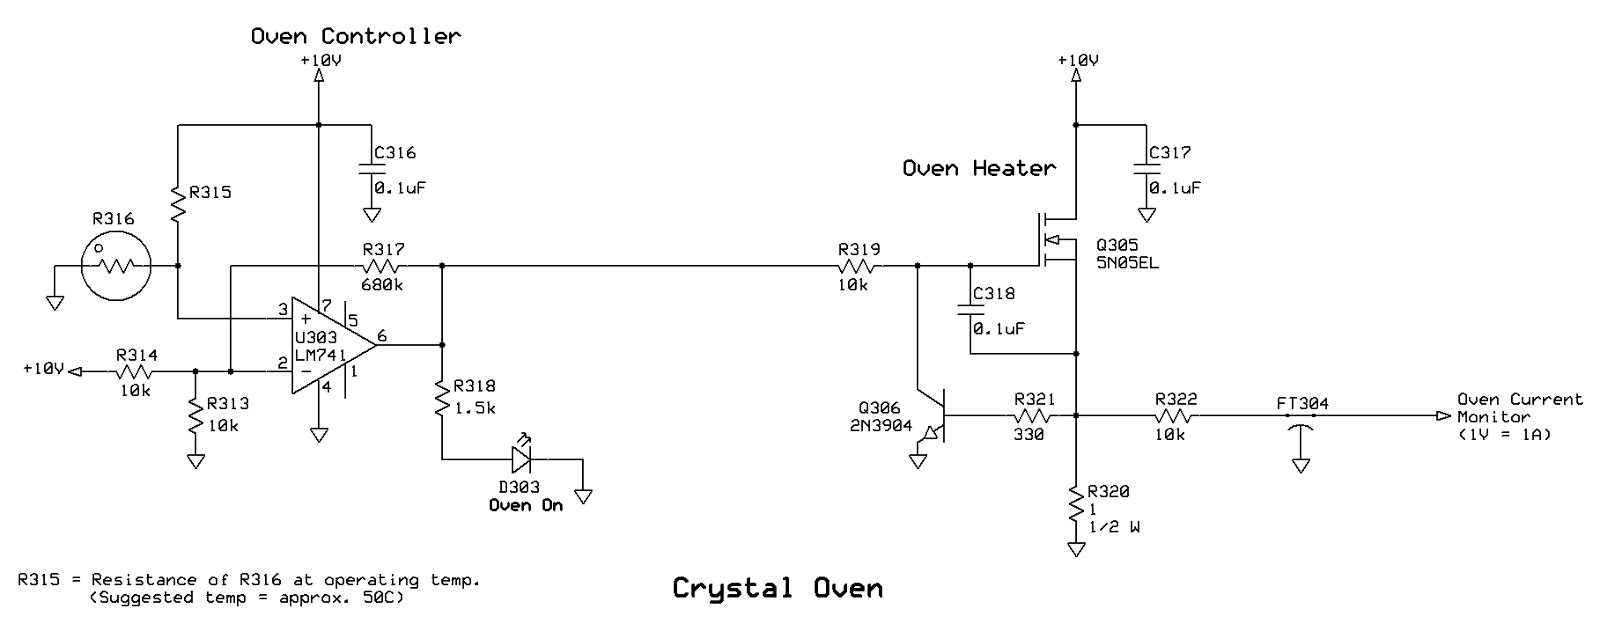 Ka7oeis Blog A Simple Crystal Oven Heater That Uses No Power Resistors Regulator Circuits By Jfet R320 Q306 Form Constant Current Limiter Circuit So The Fet Can Never Be Fully On Keeping Its Resistance Higher